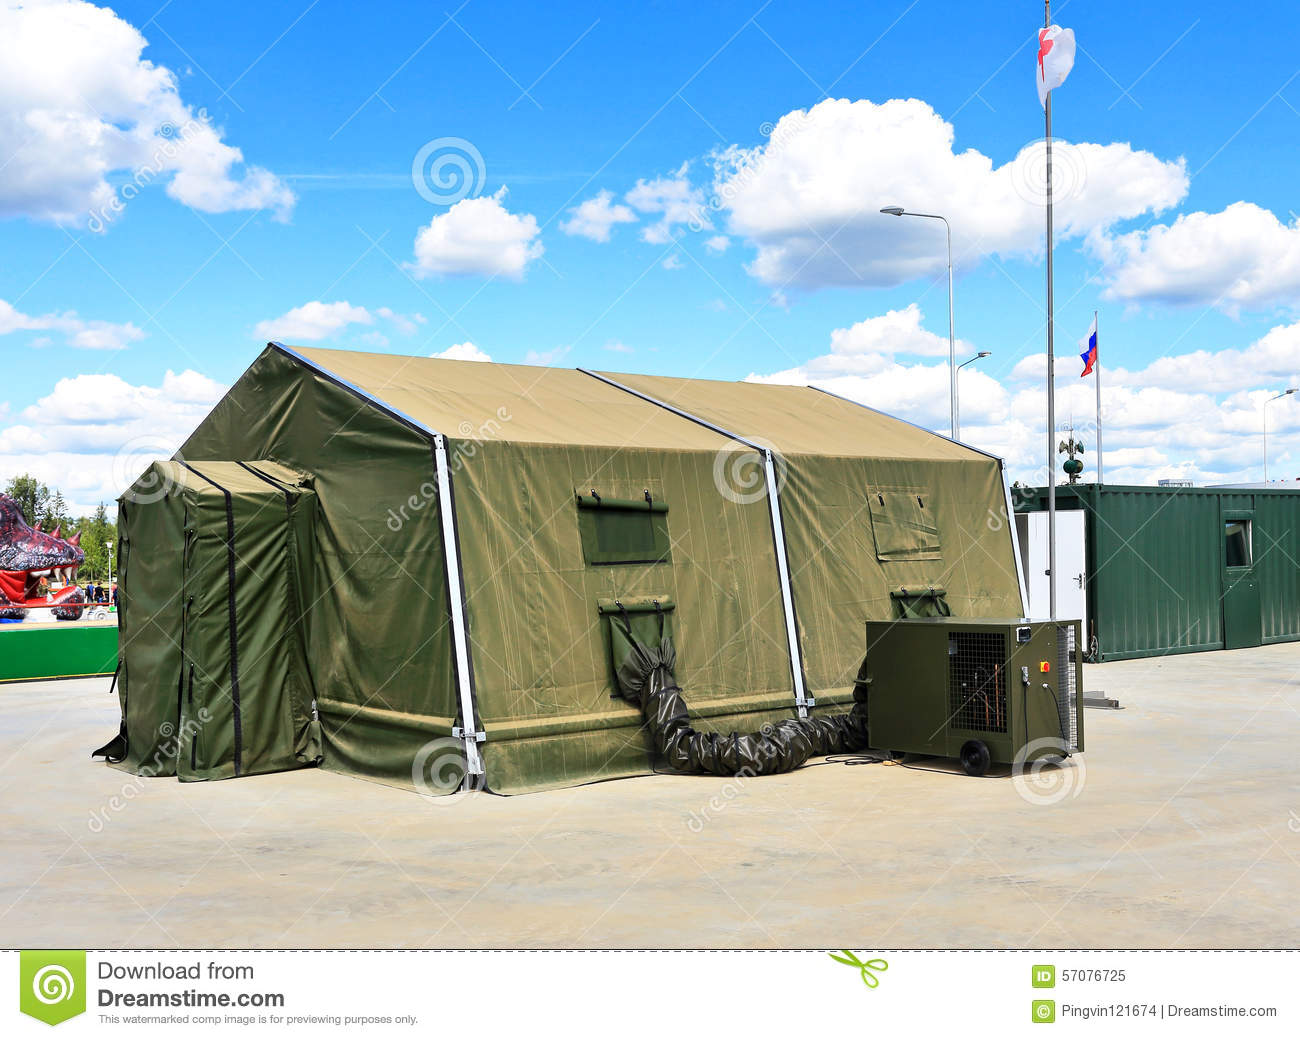 Medical tent & Medical tent stock image. Image of protective laboratory - 57076725